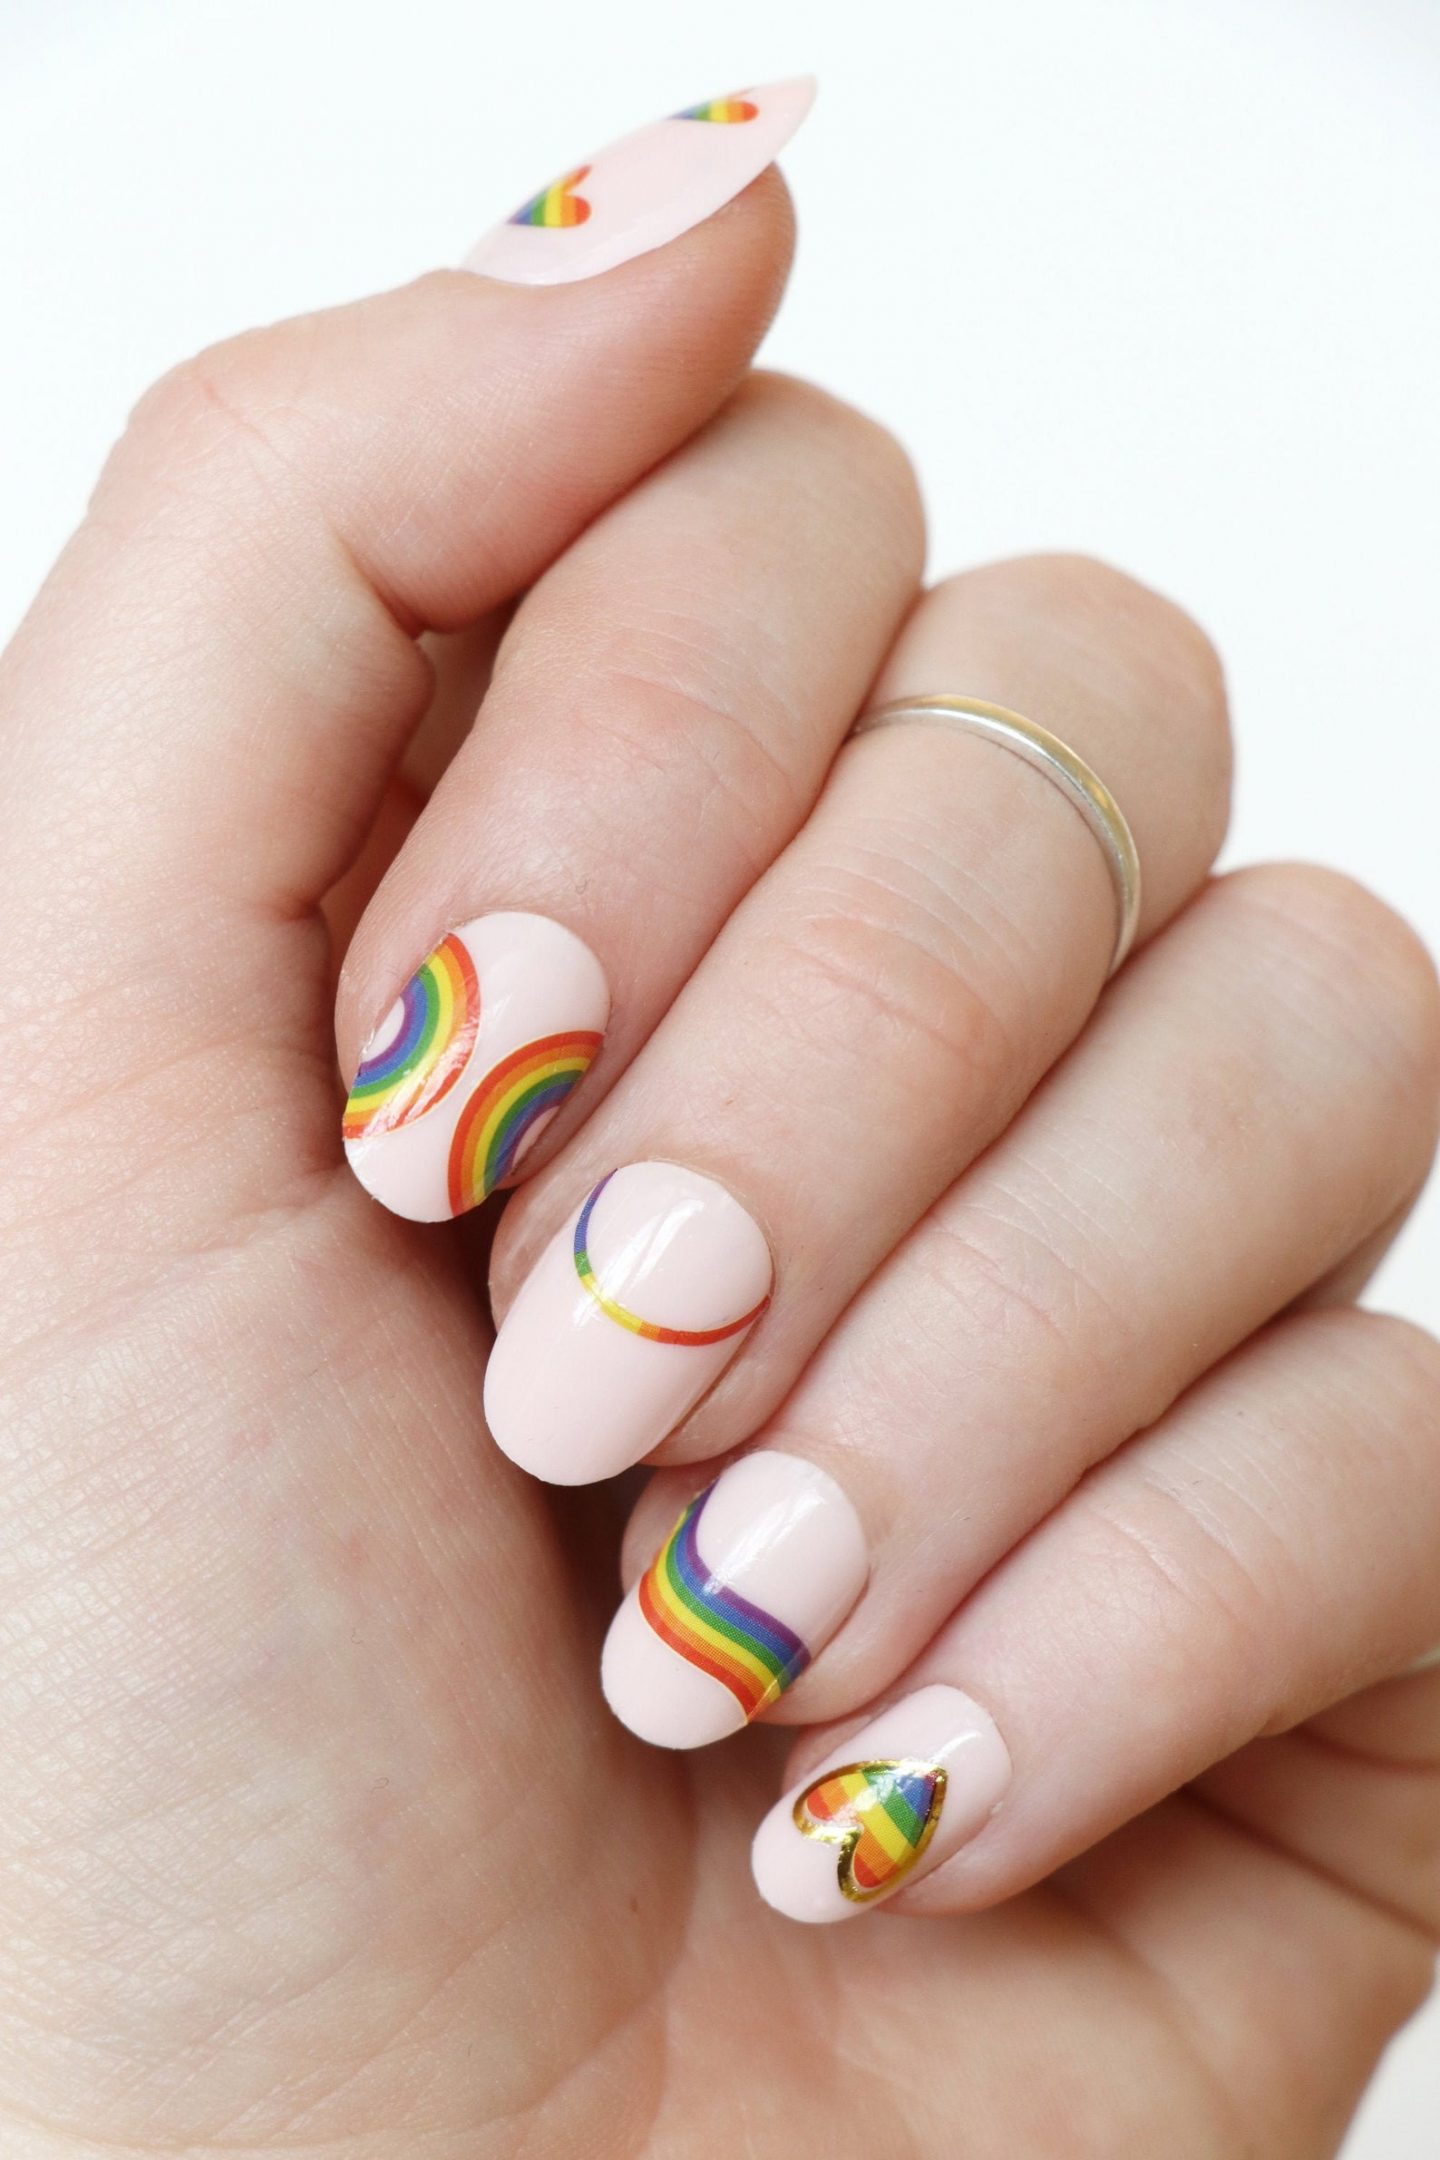 Pride nail stickers with hearts